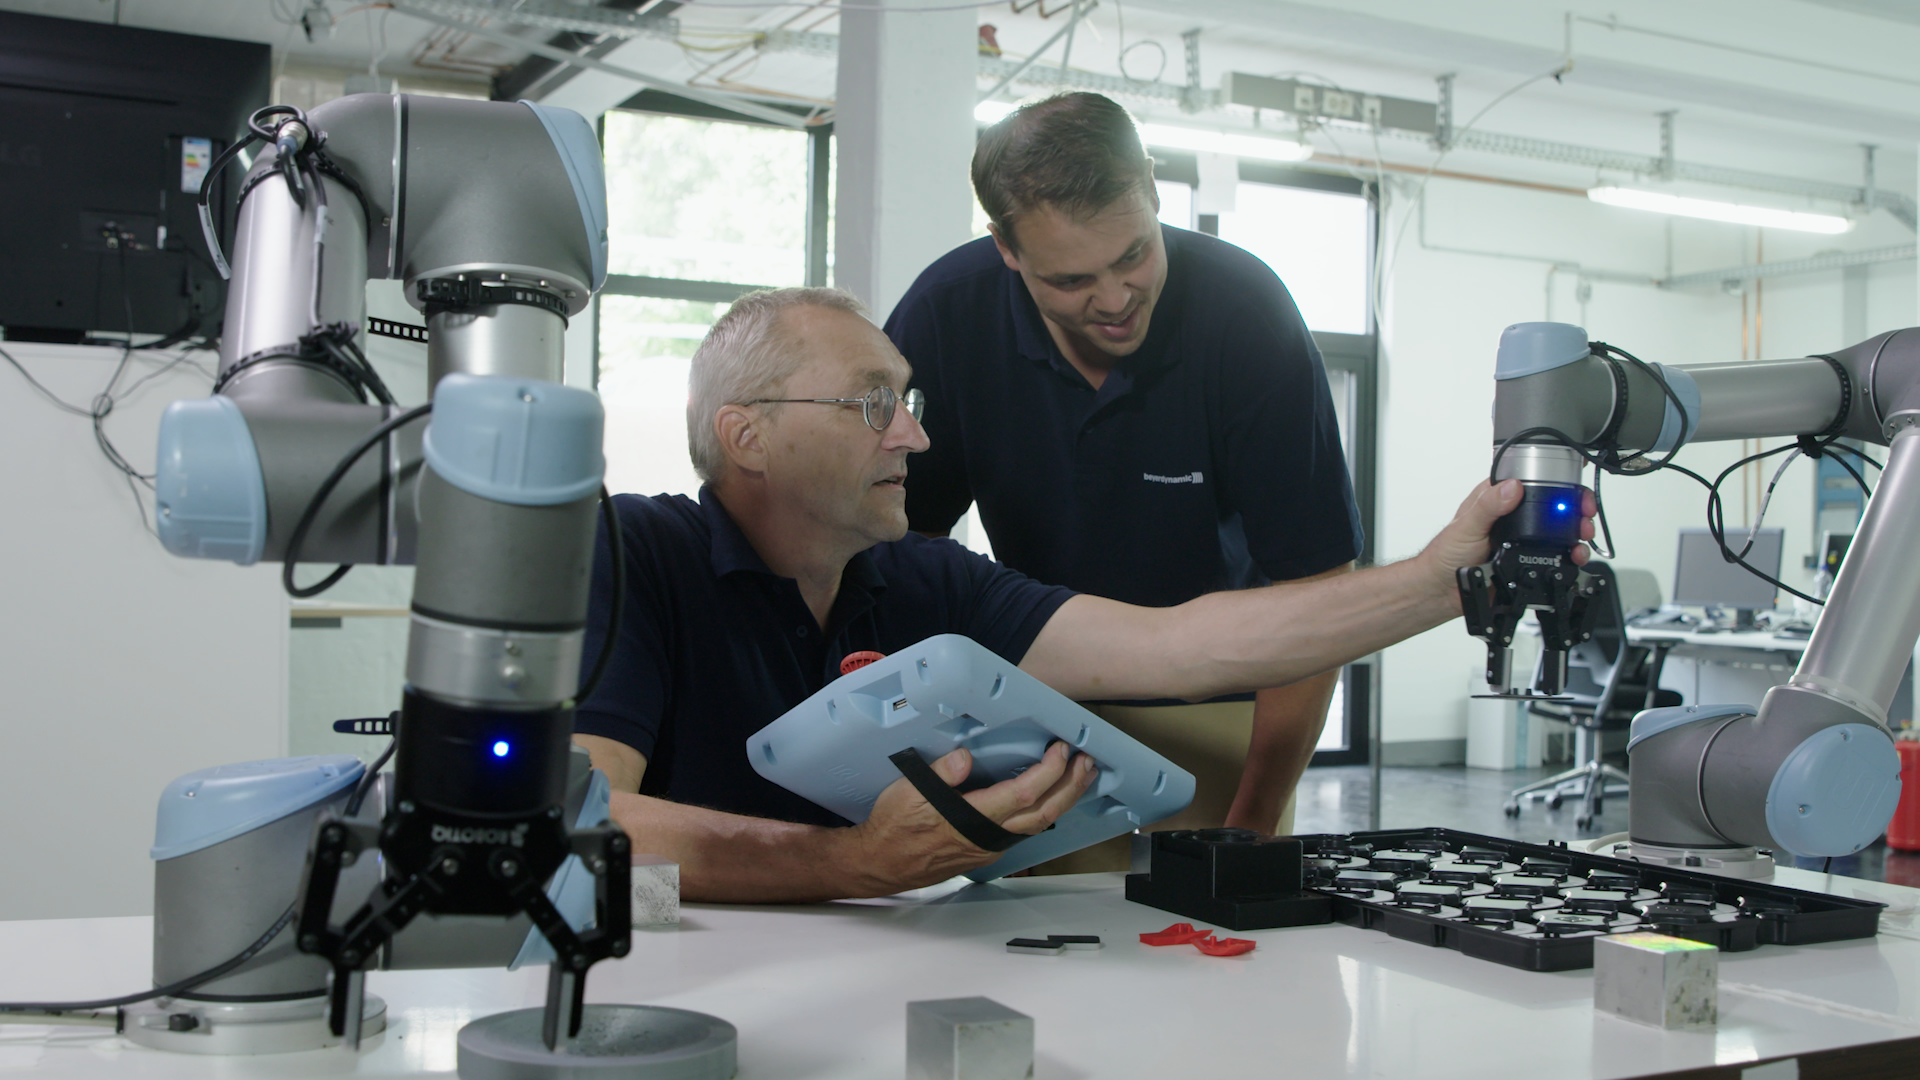 How to Plan Robotics Training Exercises Your Team Will Love